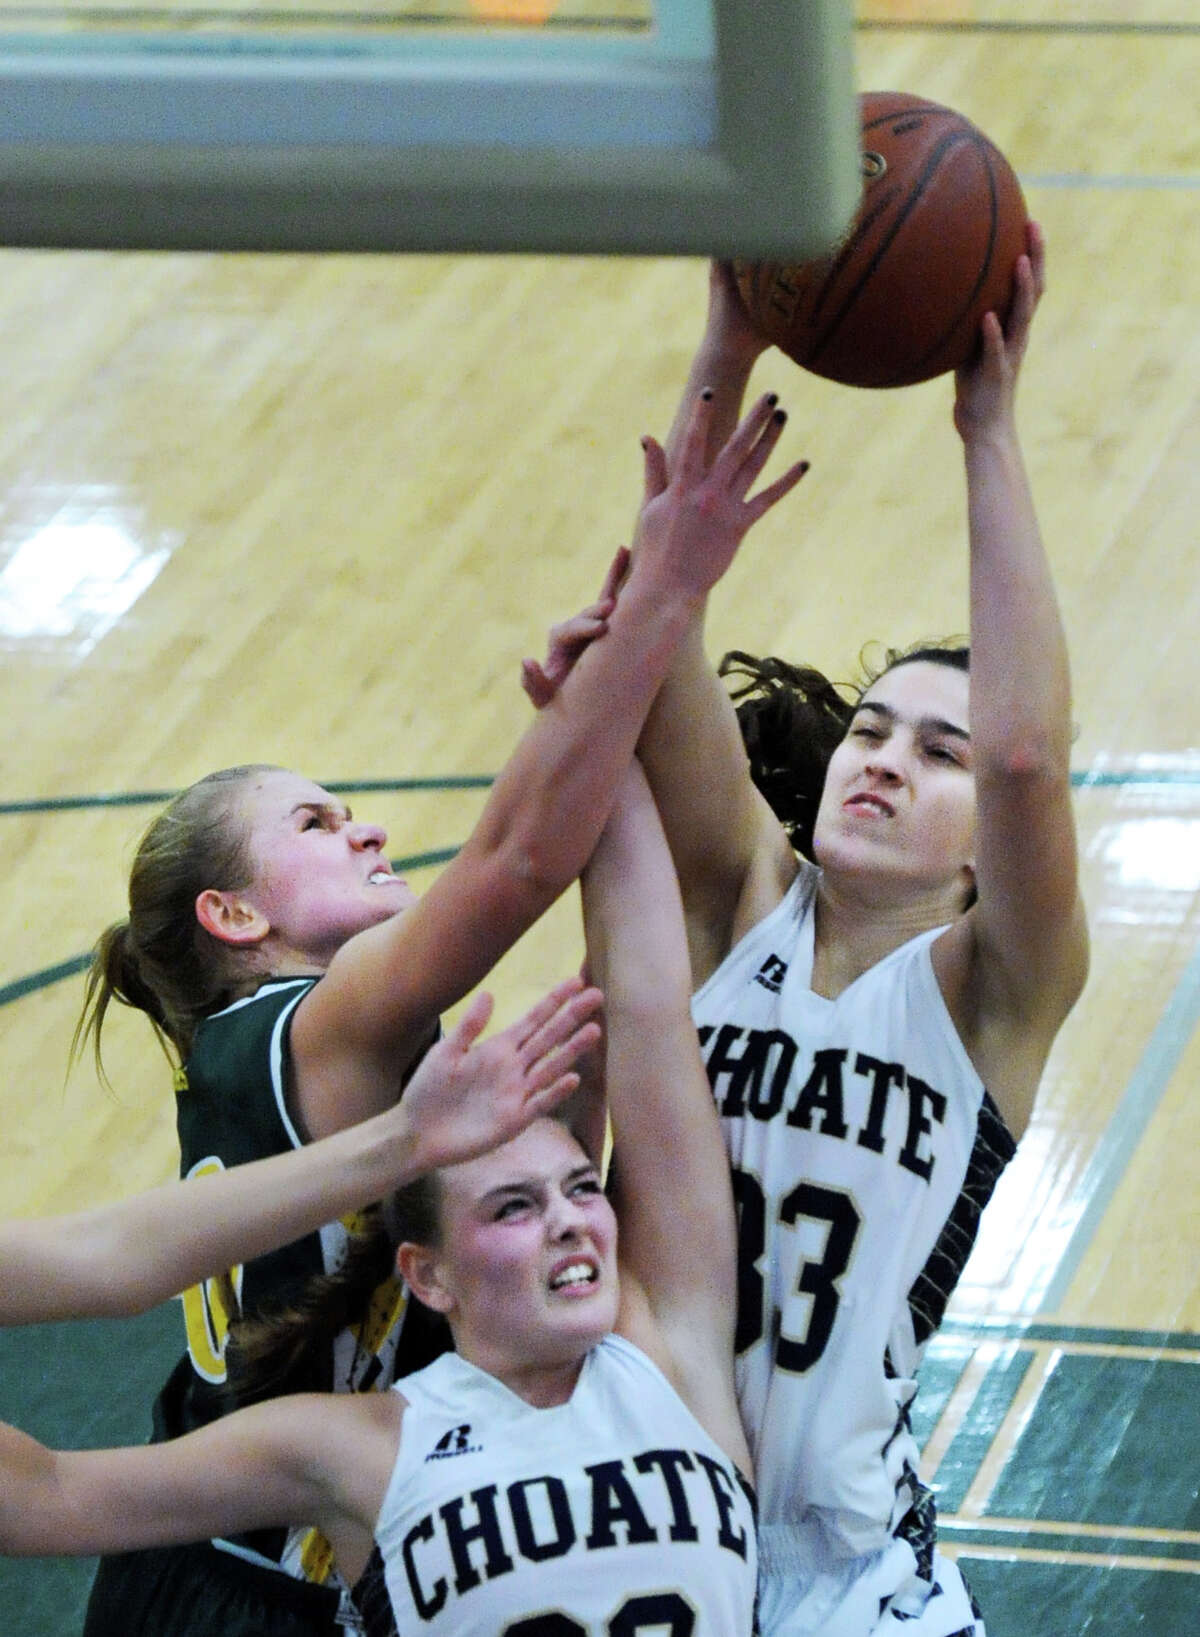 Nicole Sellew (#33) of Choate takes a shot as Greenwich Academy's Lucy Hudson (#5), left, attempts a block during the girls high school basketball game between Greenwich Academy and Choate Rosemary Hall at Greenwich Academy, Conn., Wednesday, Dec. 9, 2015. At bottom left is Choate's Gabrielle Brooks (#22).